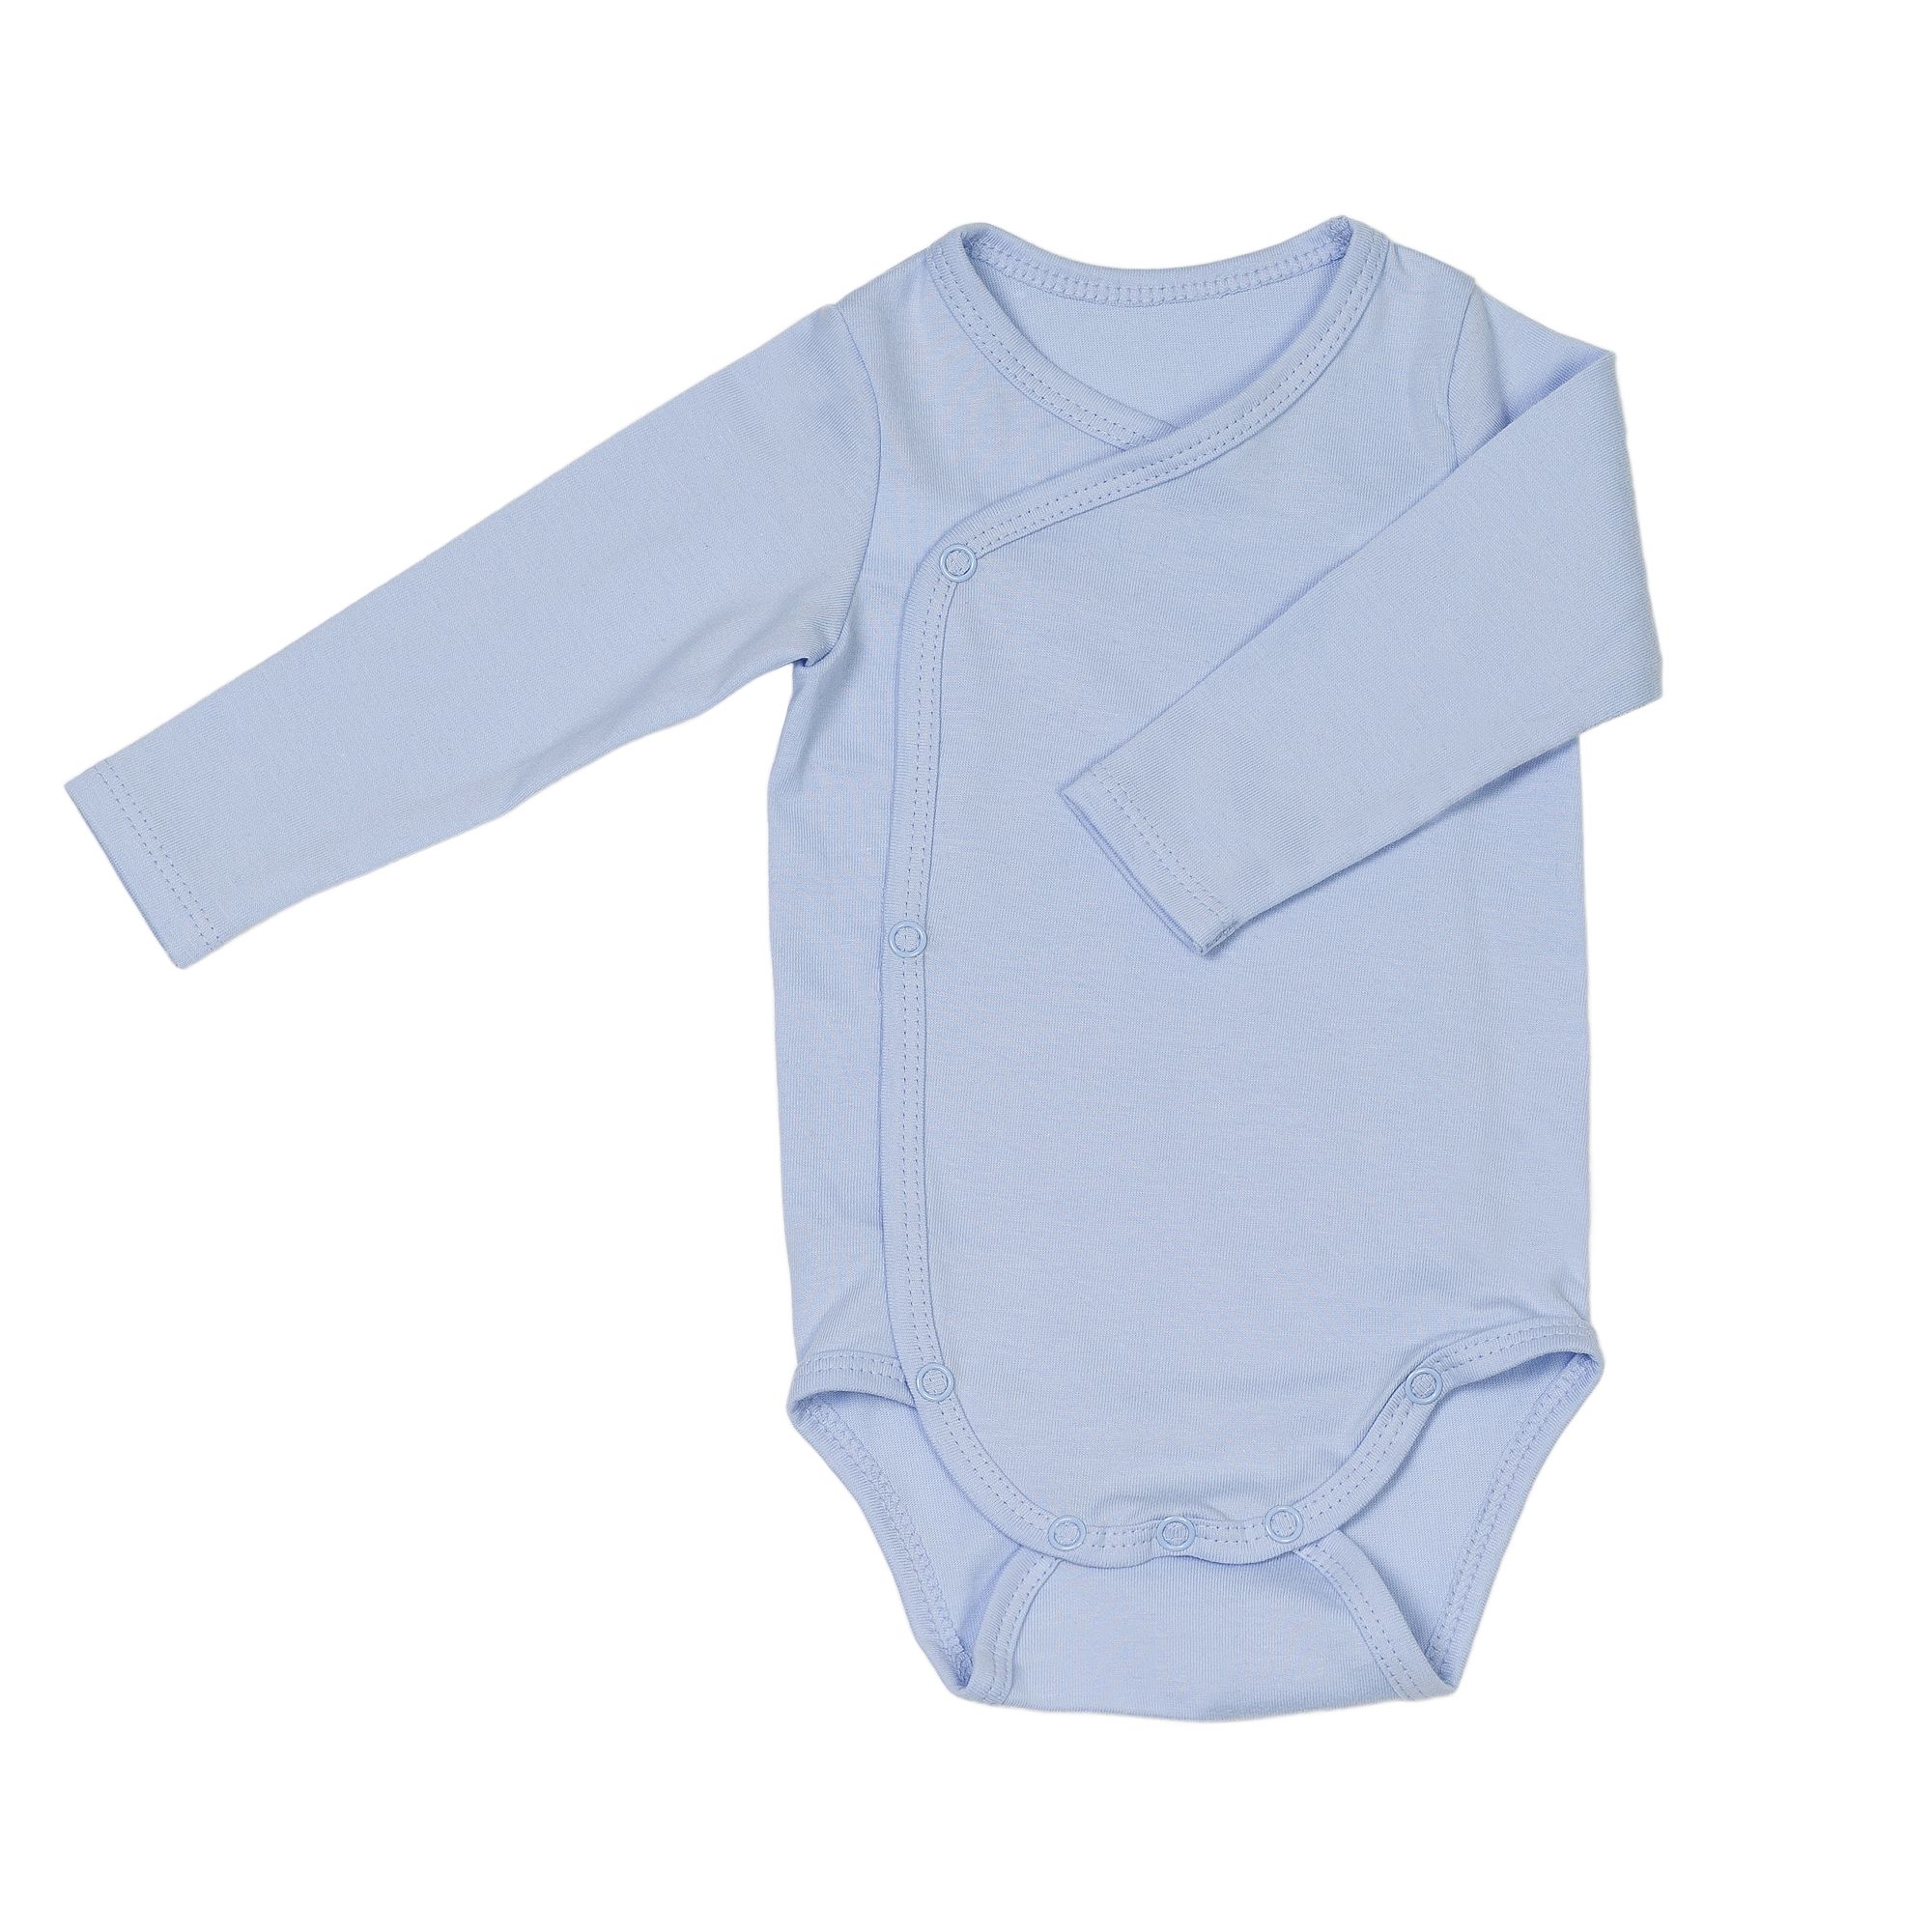 Newborn organic cotton baby bodysuit blue